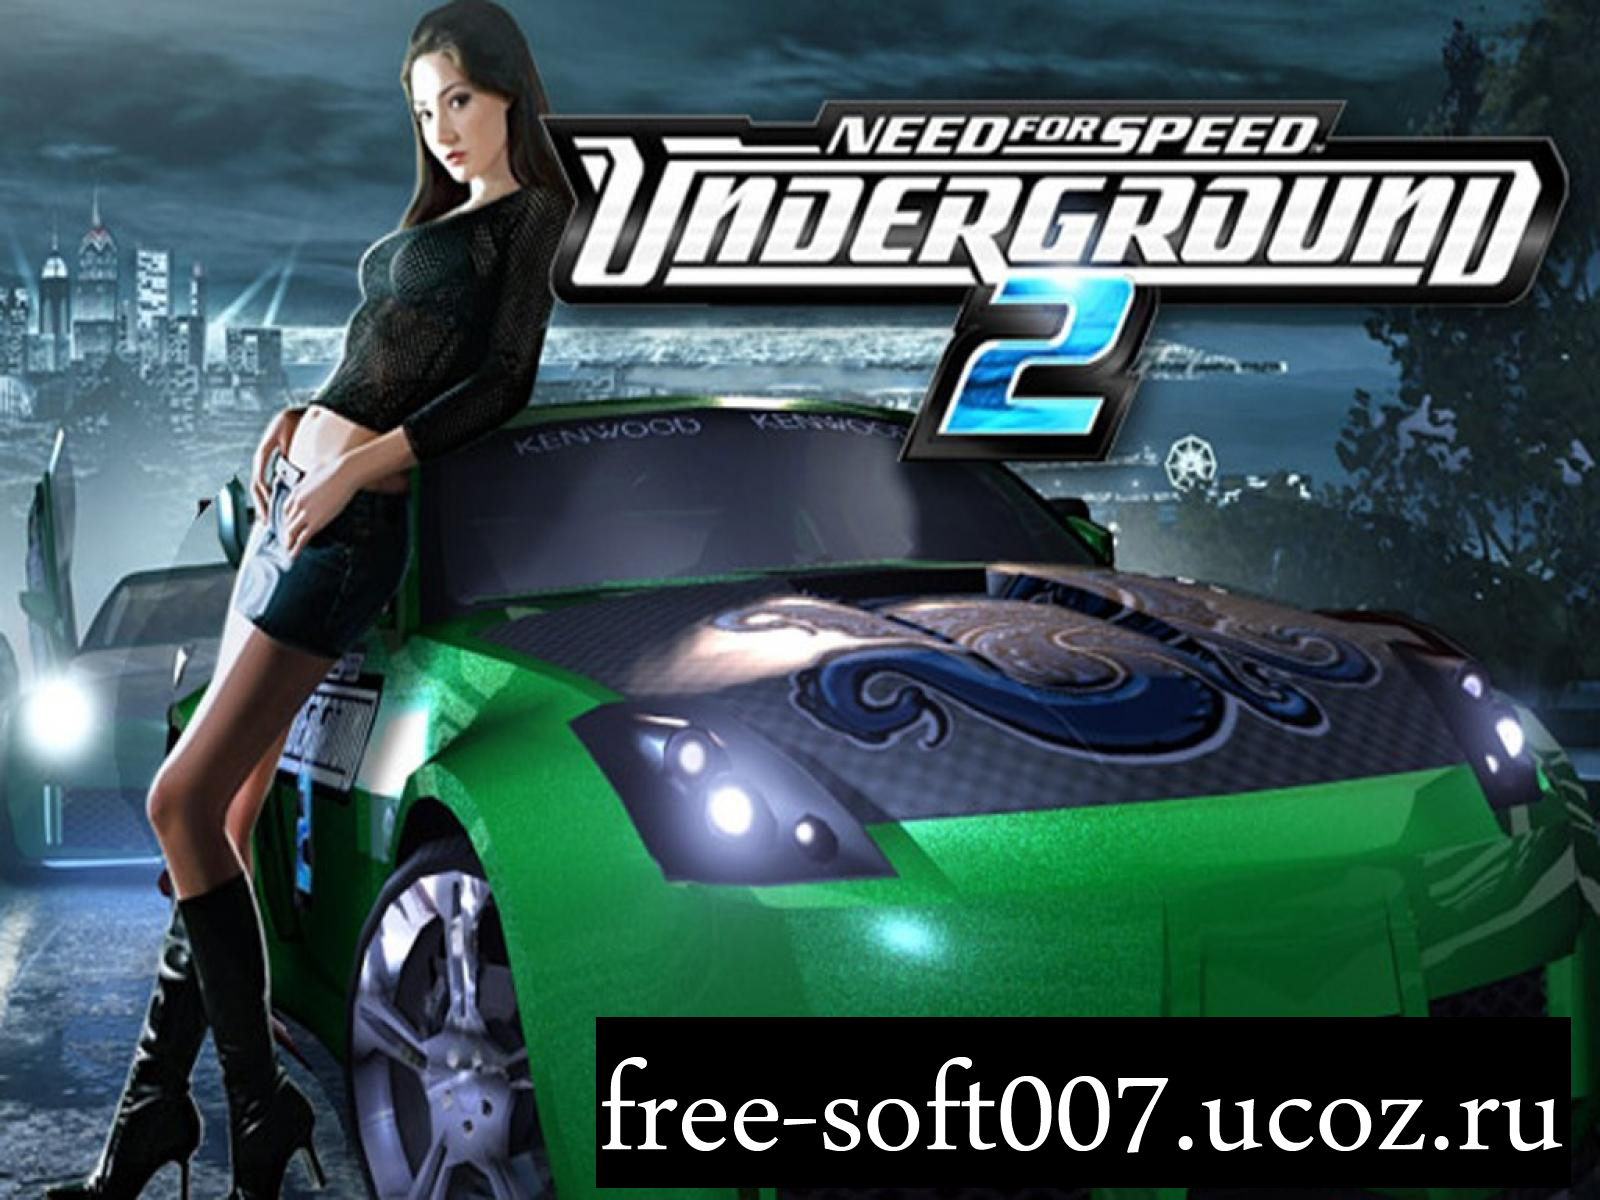 need for speed underground 2 code cd key